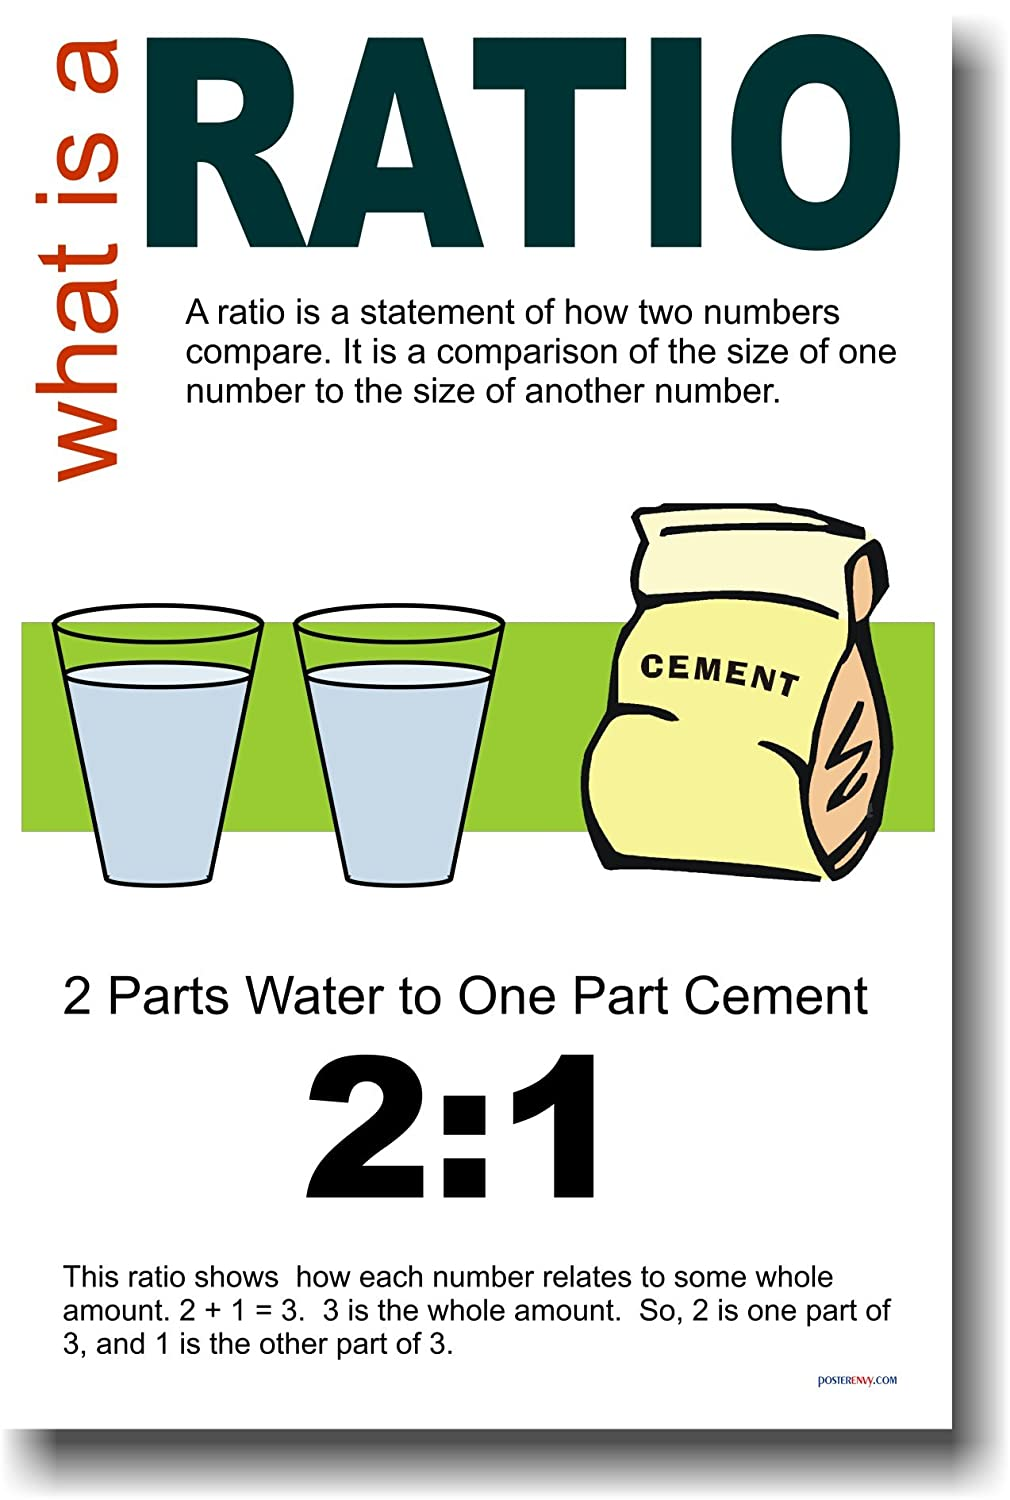 Amazon.com: What Is a Ratio? - Educational Classroom Math Poster ...